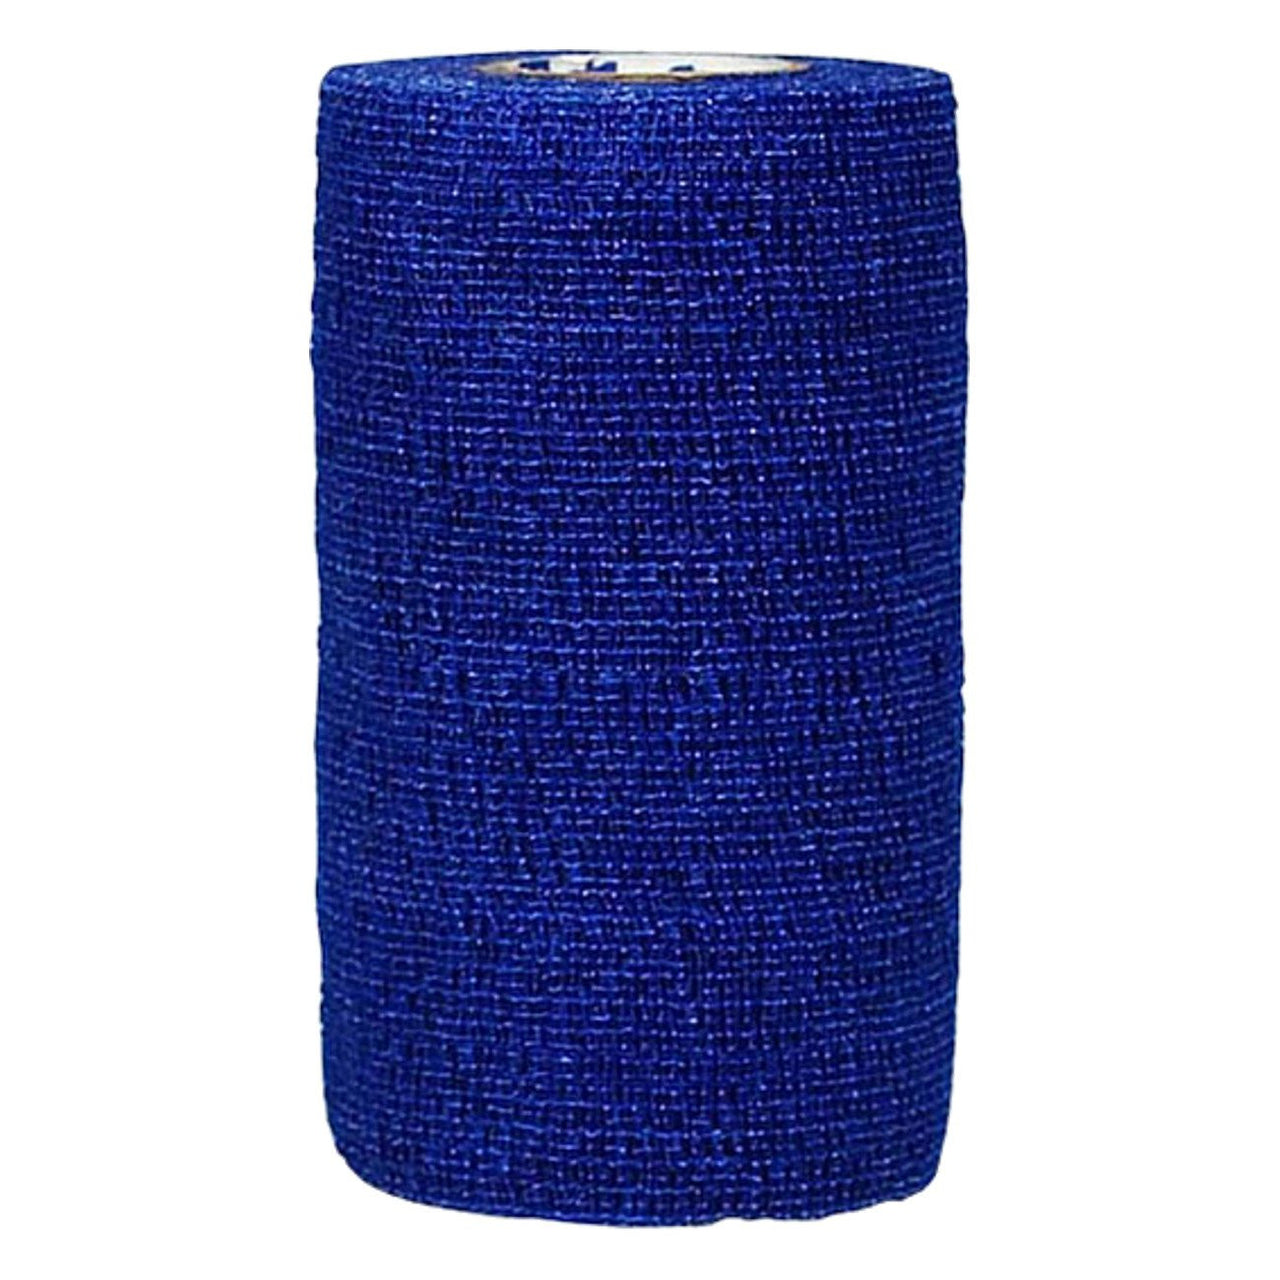 Andover Powerflex 4X15 Blue - Wound Dressing Andover - Canada